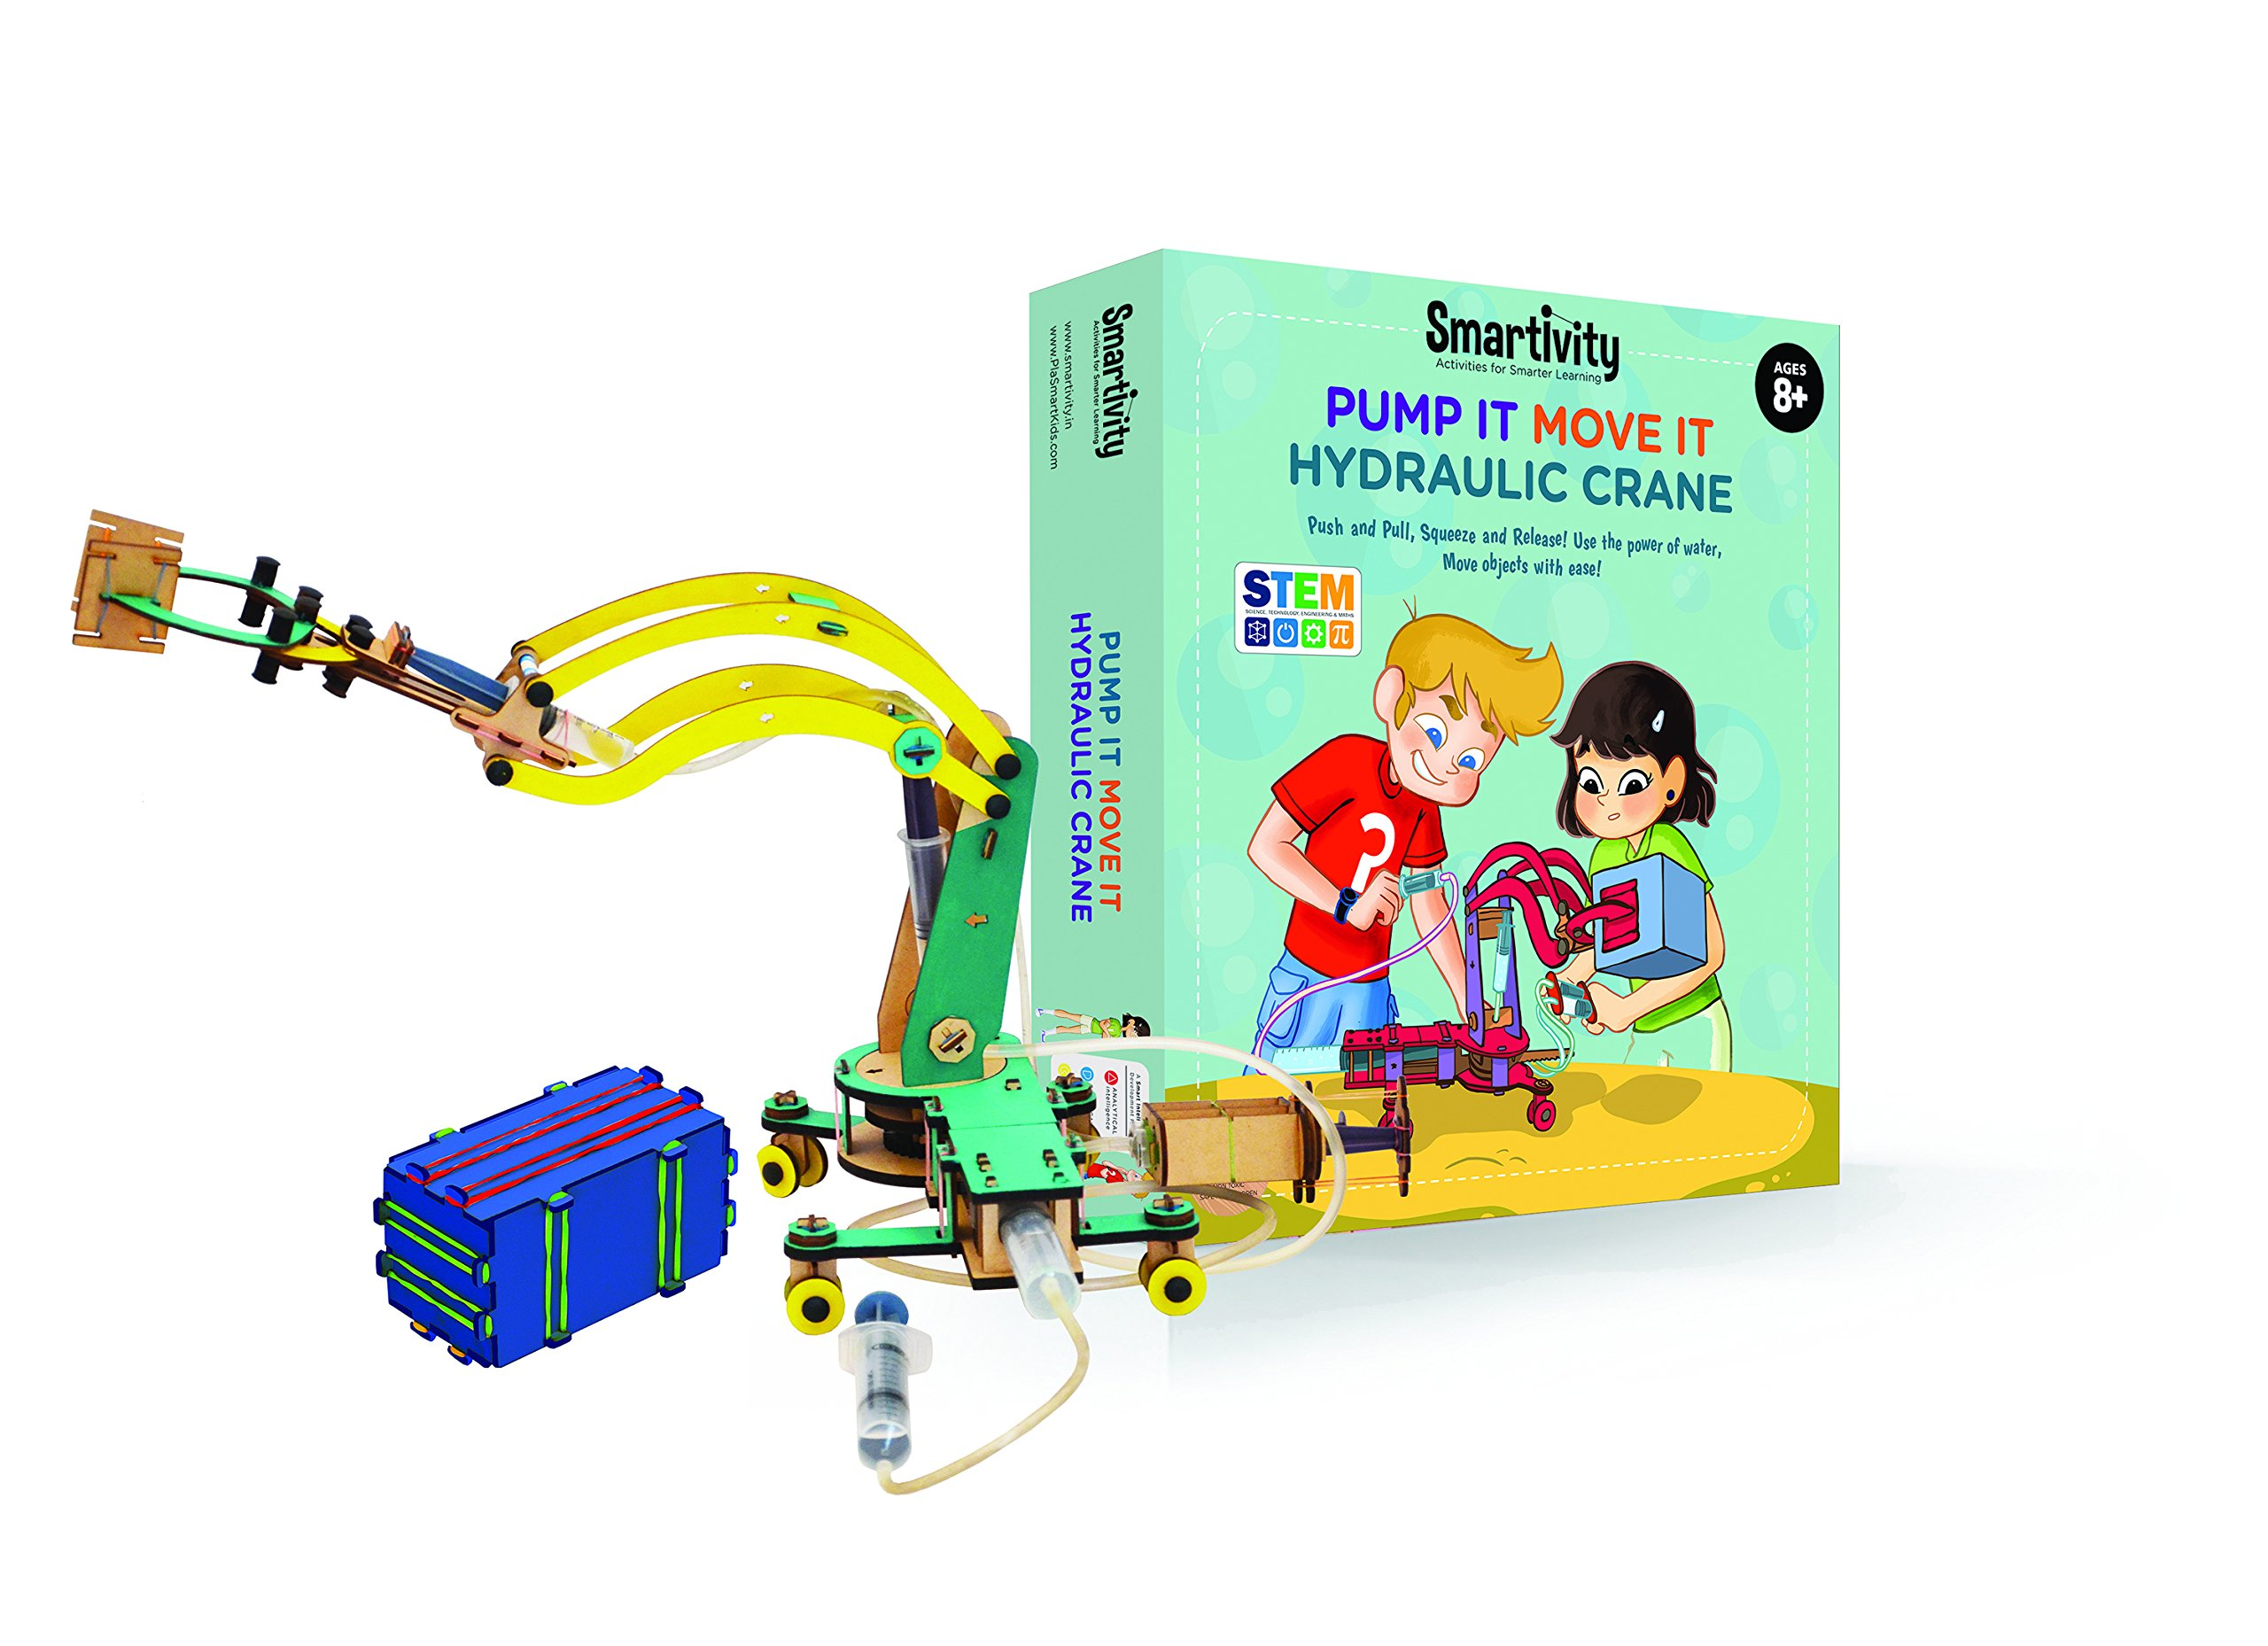 Smartivity Pump It Move It Hydraulic Crane - S.T.E.M., S.T.E.A.M. learning, Ages 8 Years and Up by PlaSmart (Image #1)